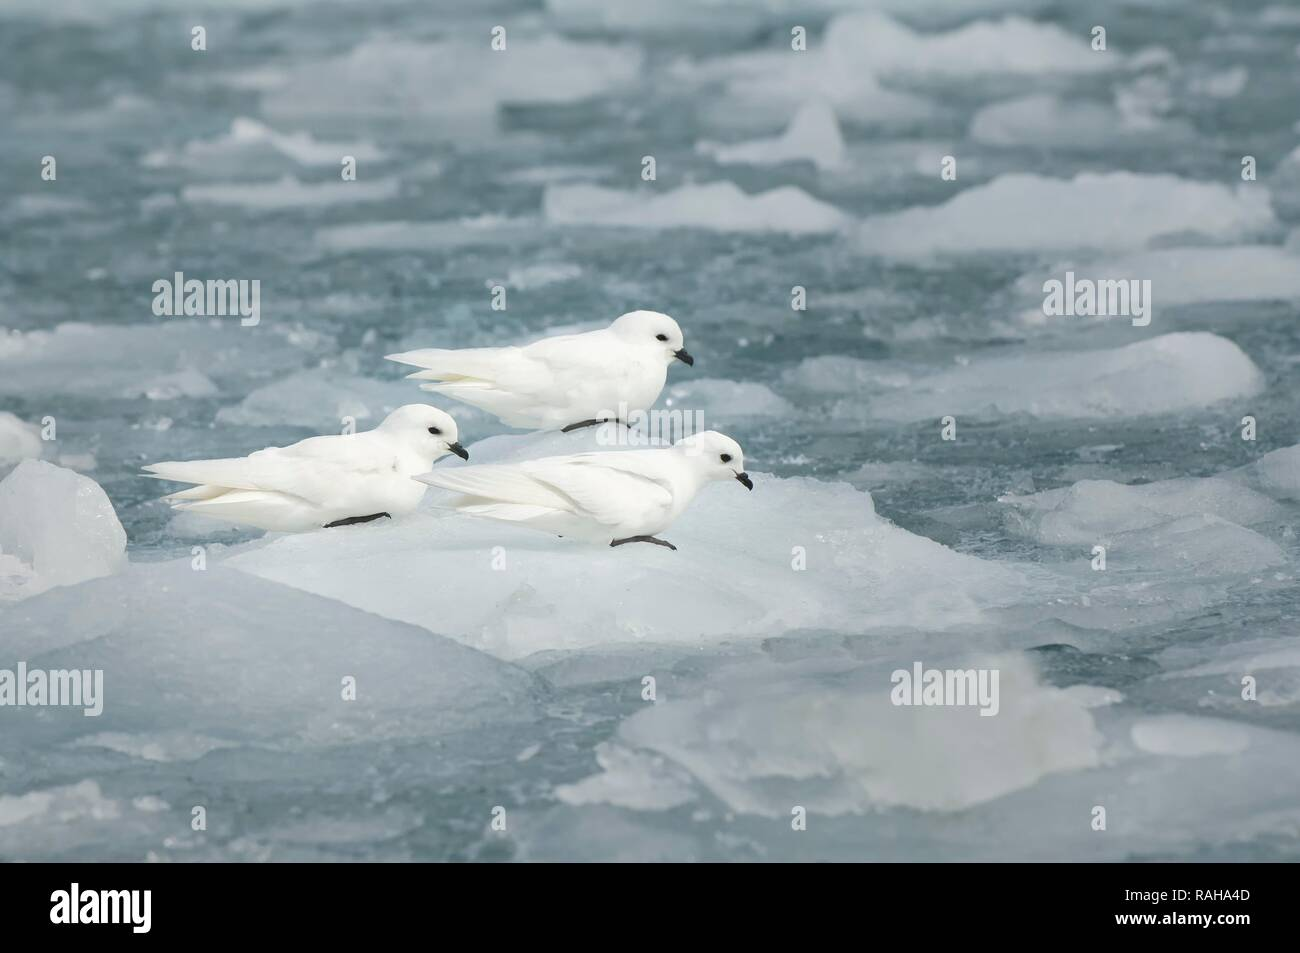 Group of Snow petrels (Pagodroma nivea) on the pack ice, Moltke Bay, South Georgia - Stock Image